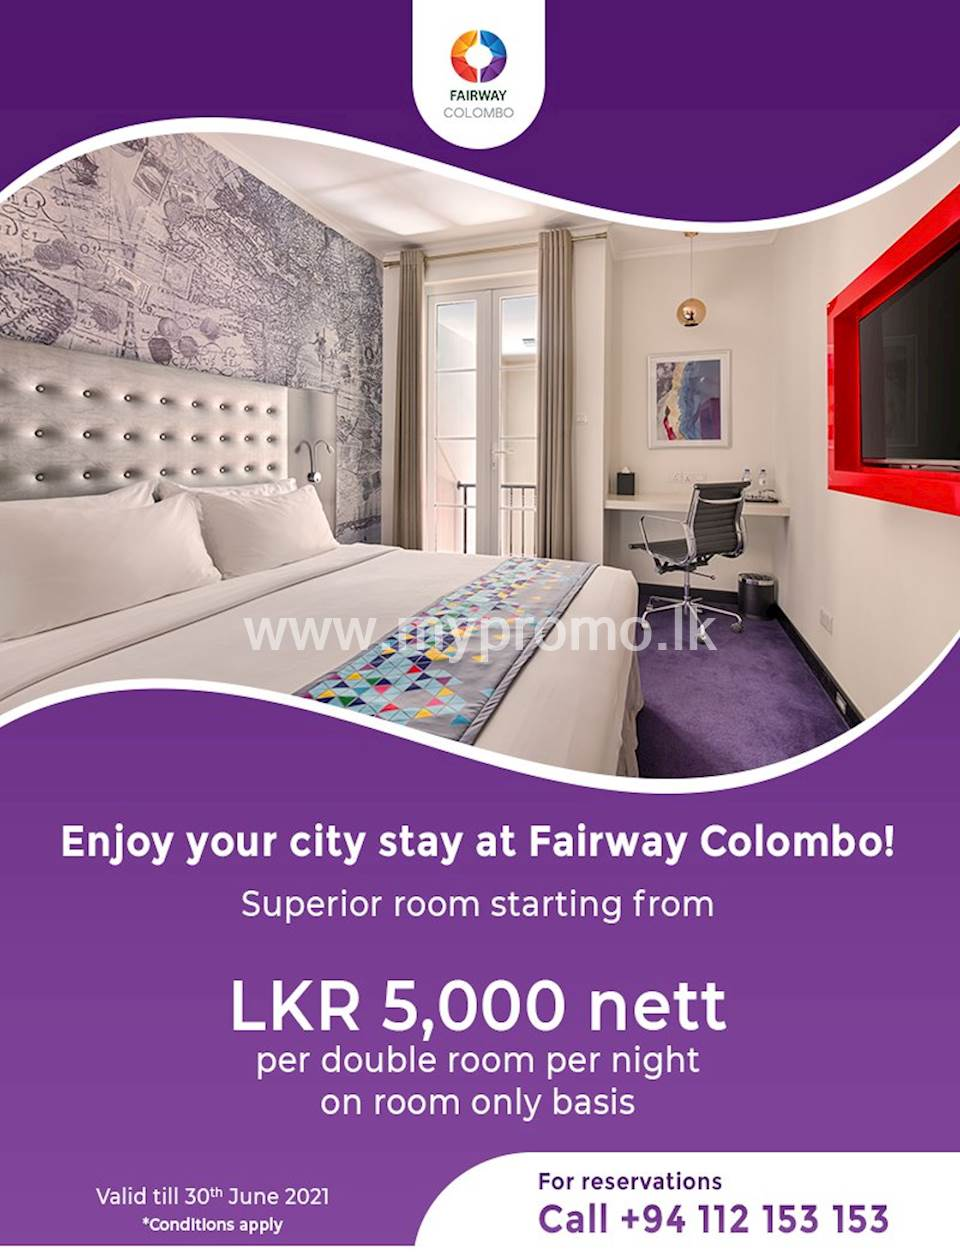 Superior Room starting from LKR 5,000 nett per double room per night on room only basis at Fairway Colombo